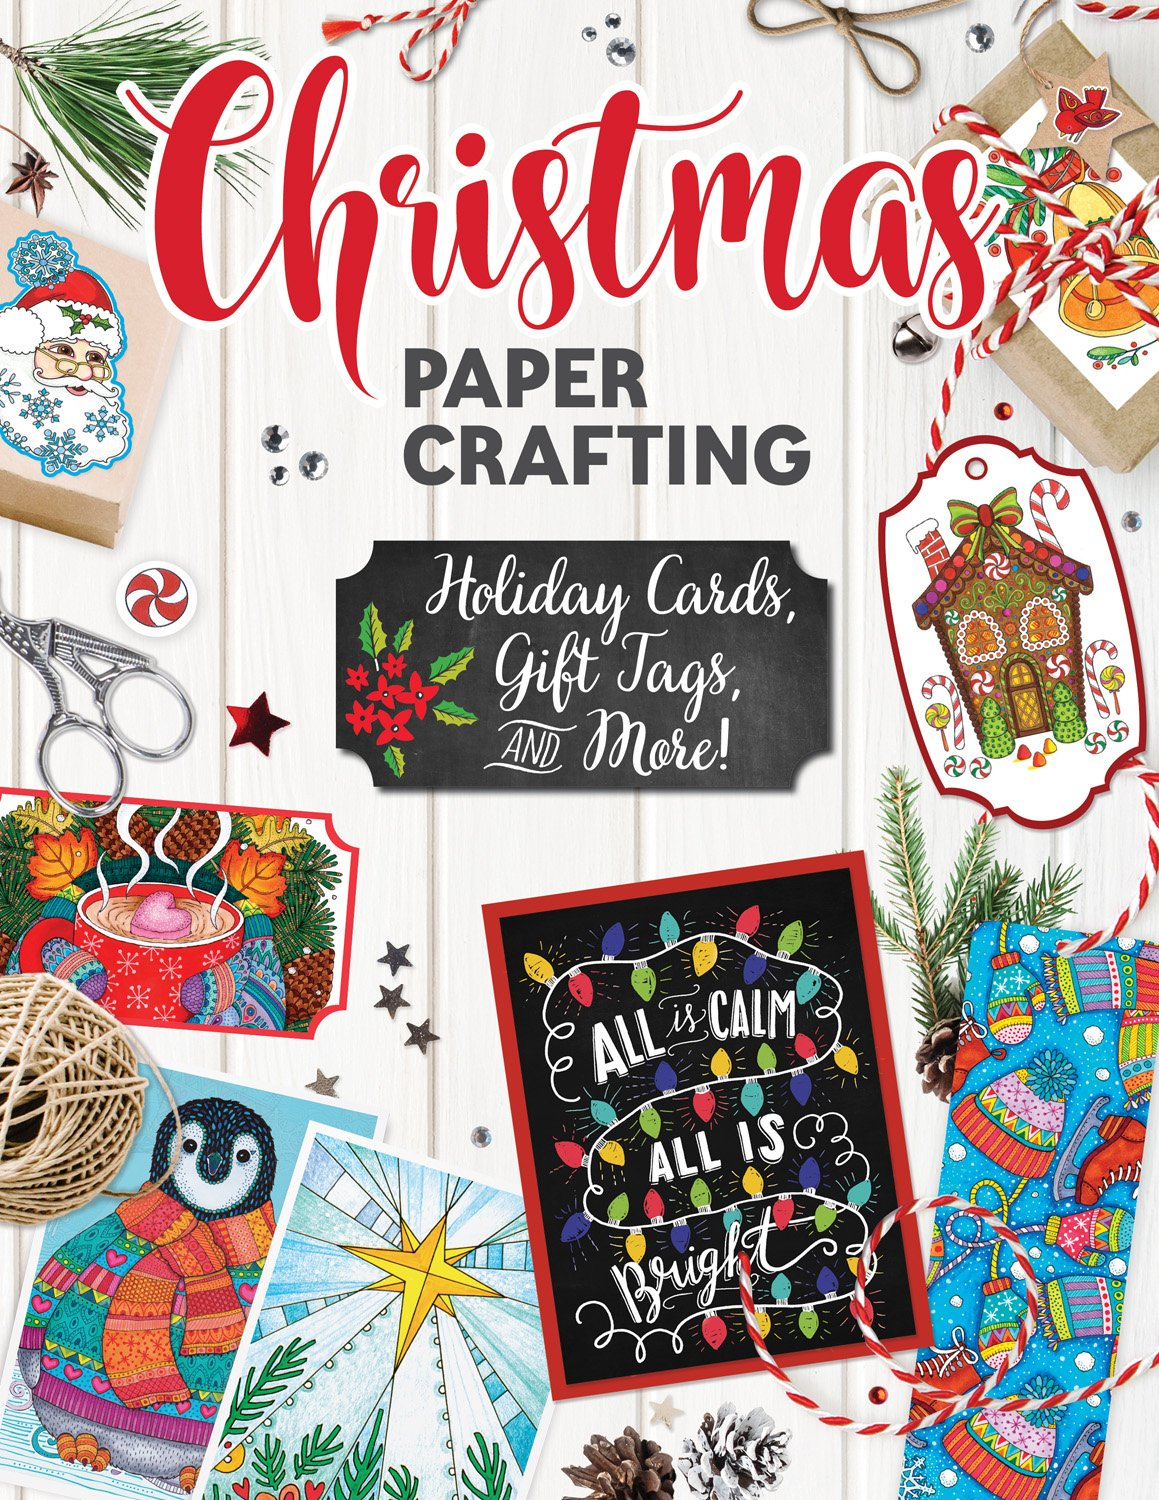 Looking for a book filled with fun Christmas Crafts? See what we think of Christmas Papercrafting: Holiday Cards, Gift Tags, and More here!